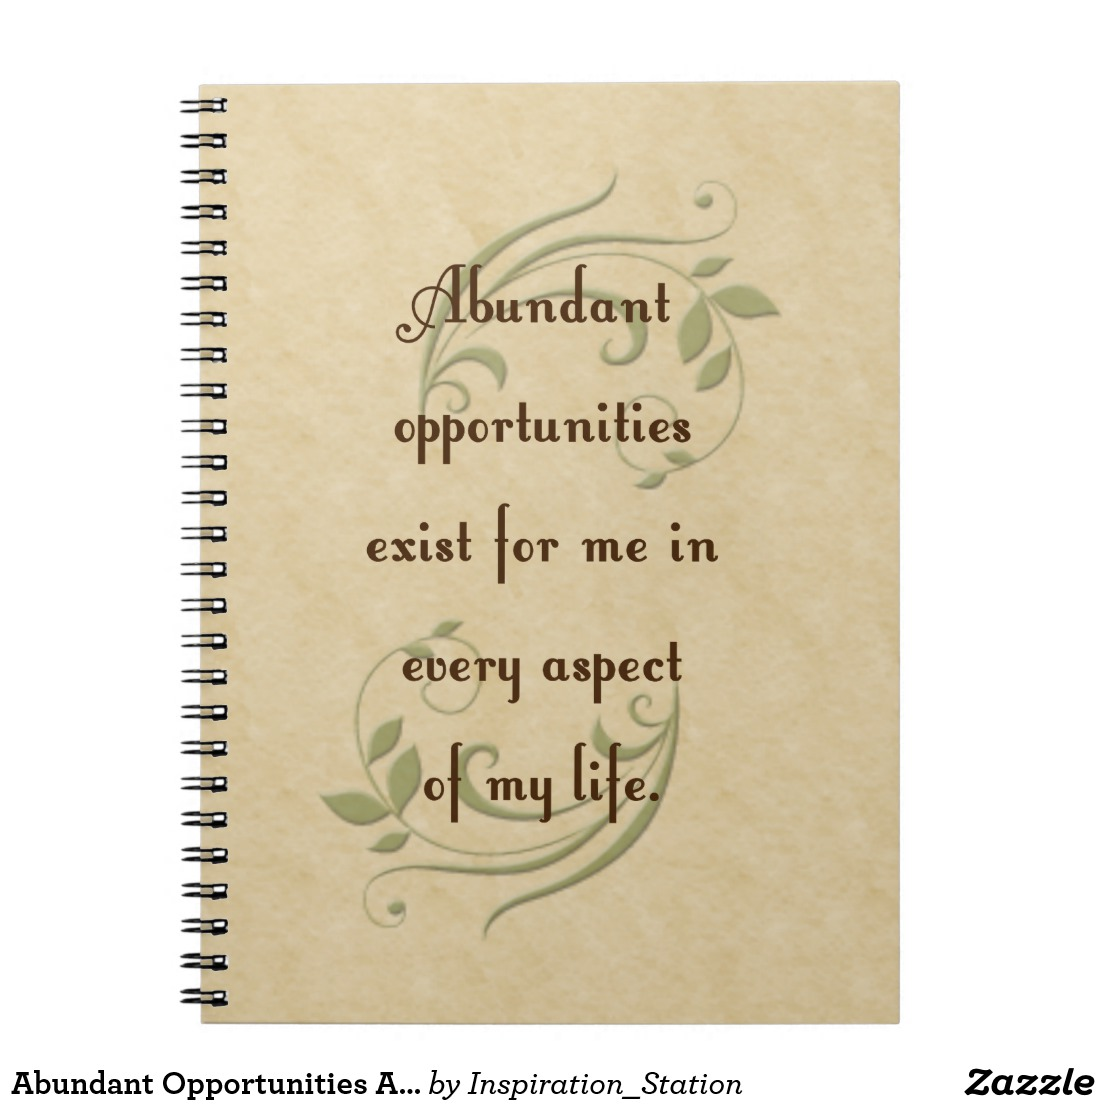 Notebook with Abundant Opportunities Affirmation Image